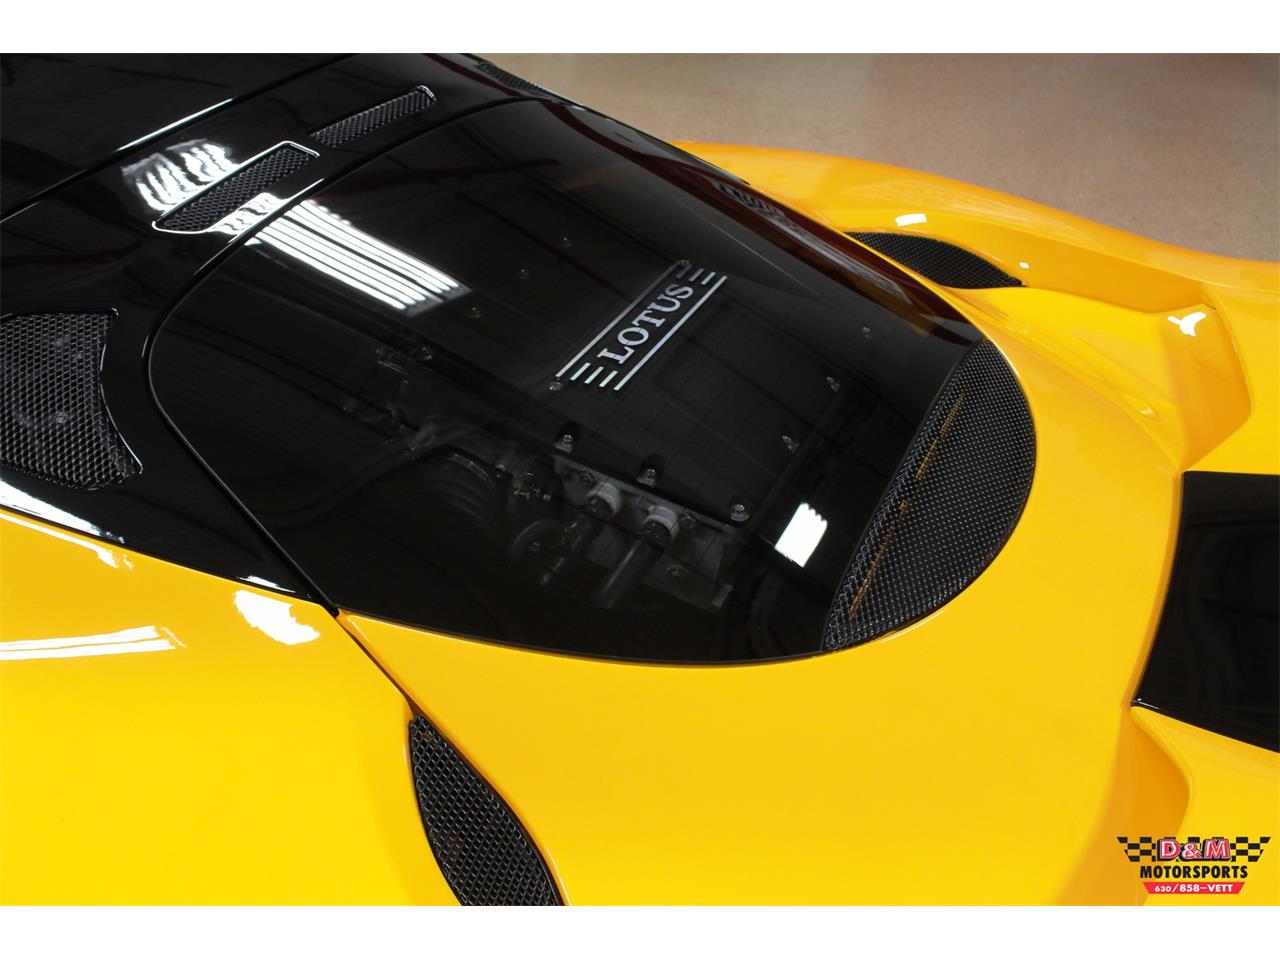 Large Picture of 2017 Evora located in Glen Ellyn Illinois Offered by D & M Motorsports - OY1K